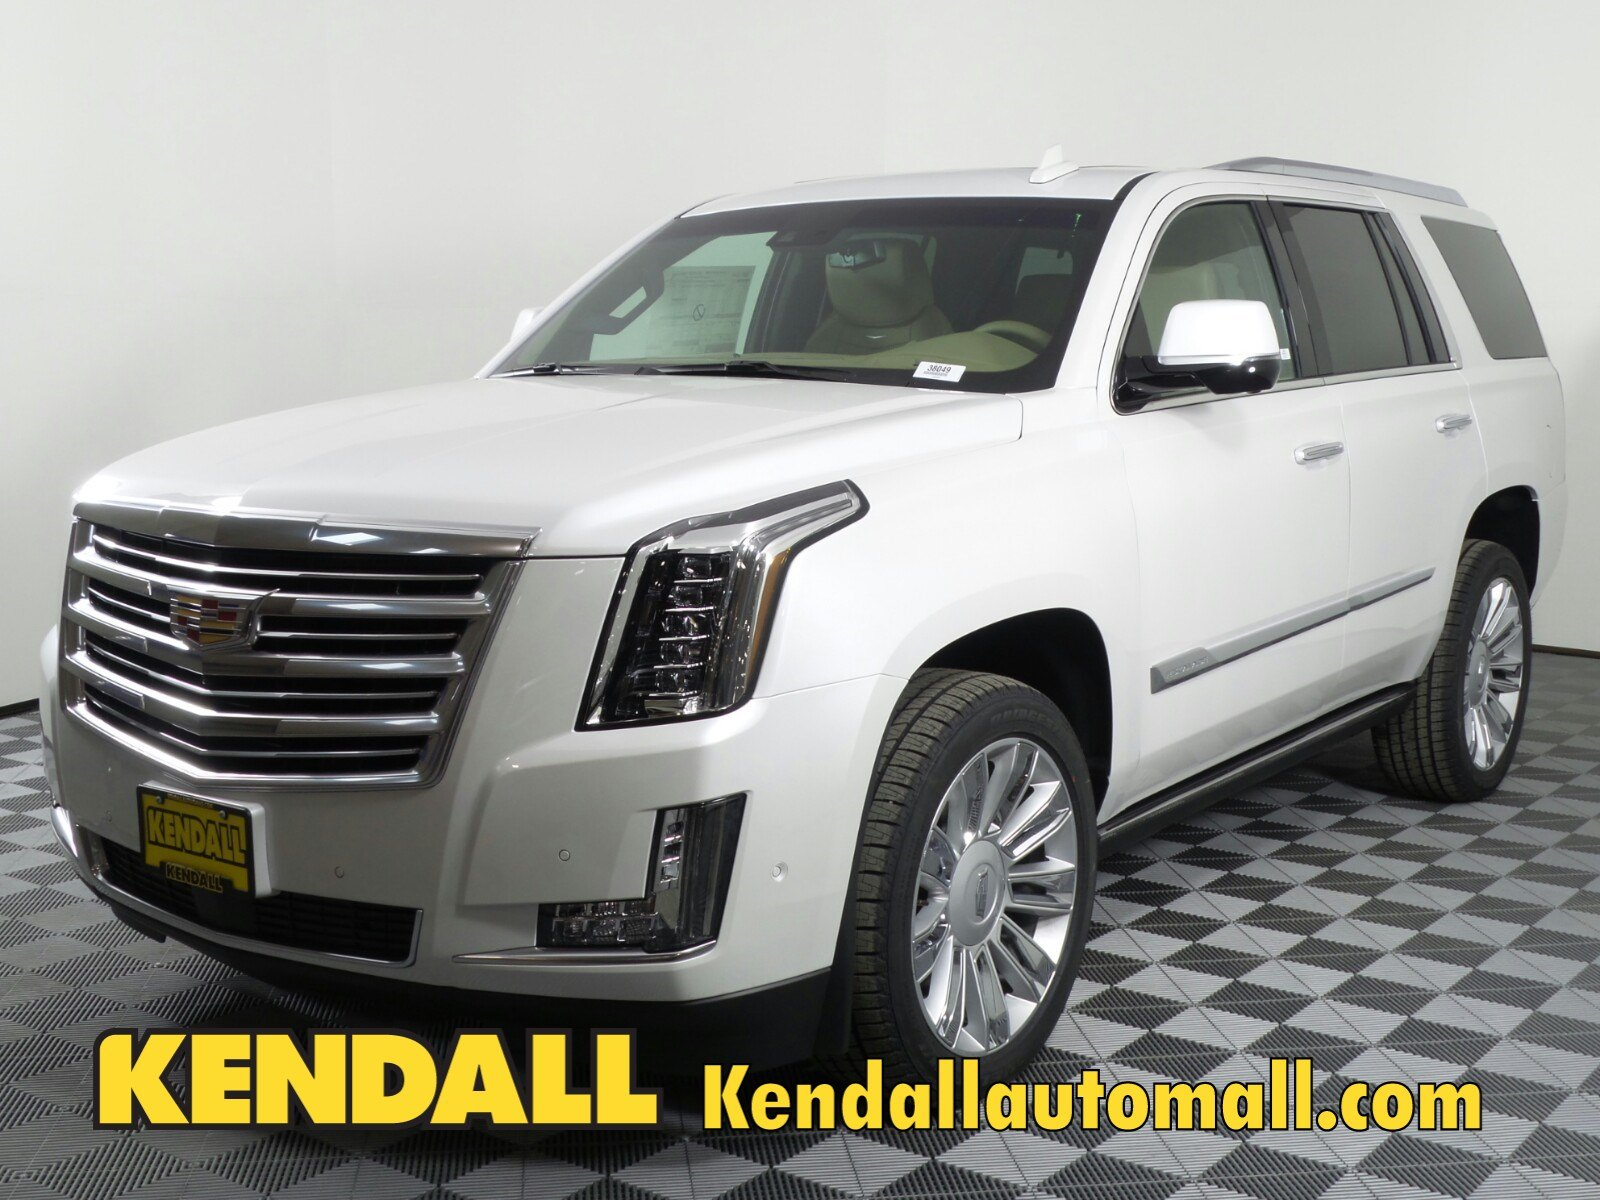 escalade front hd cadillac c platinum wallpaper images cars